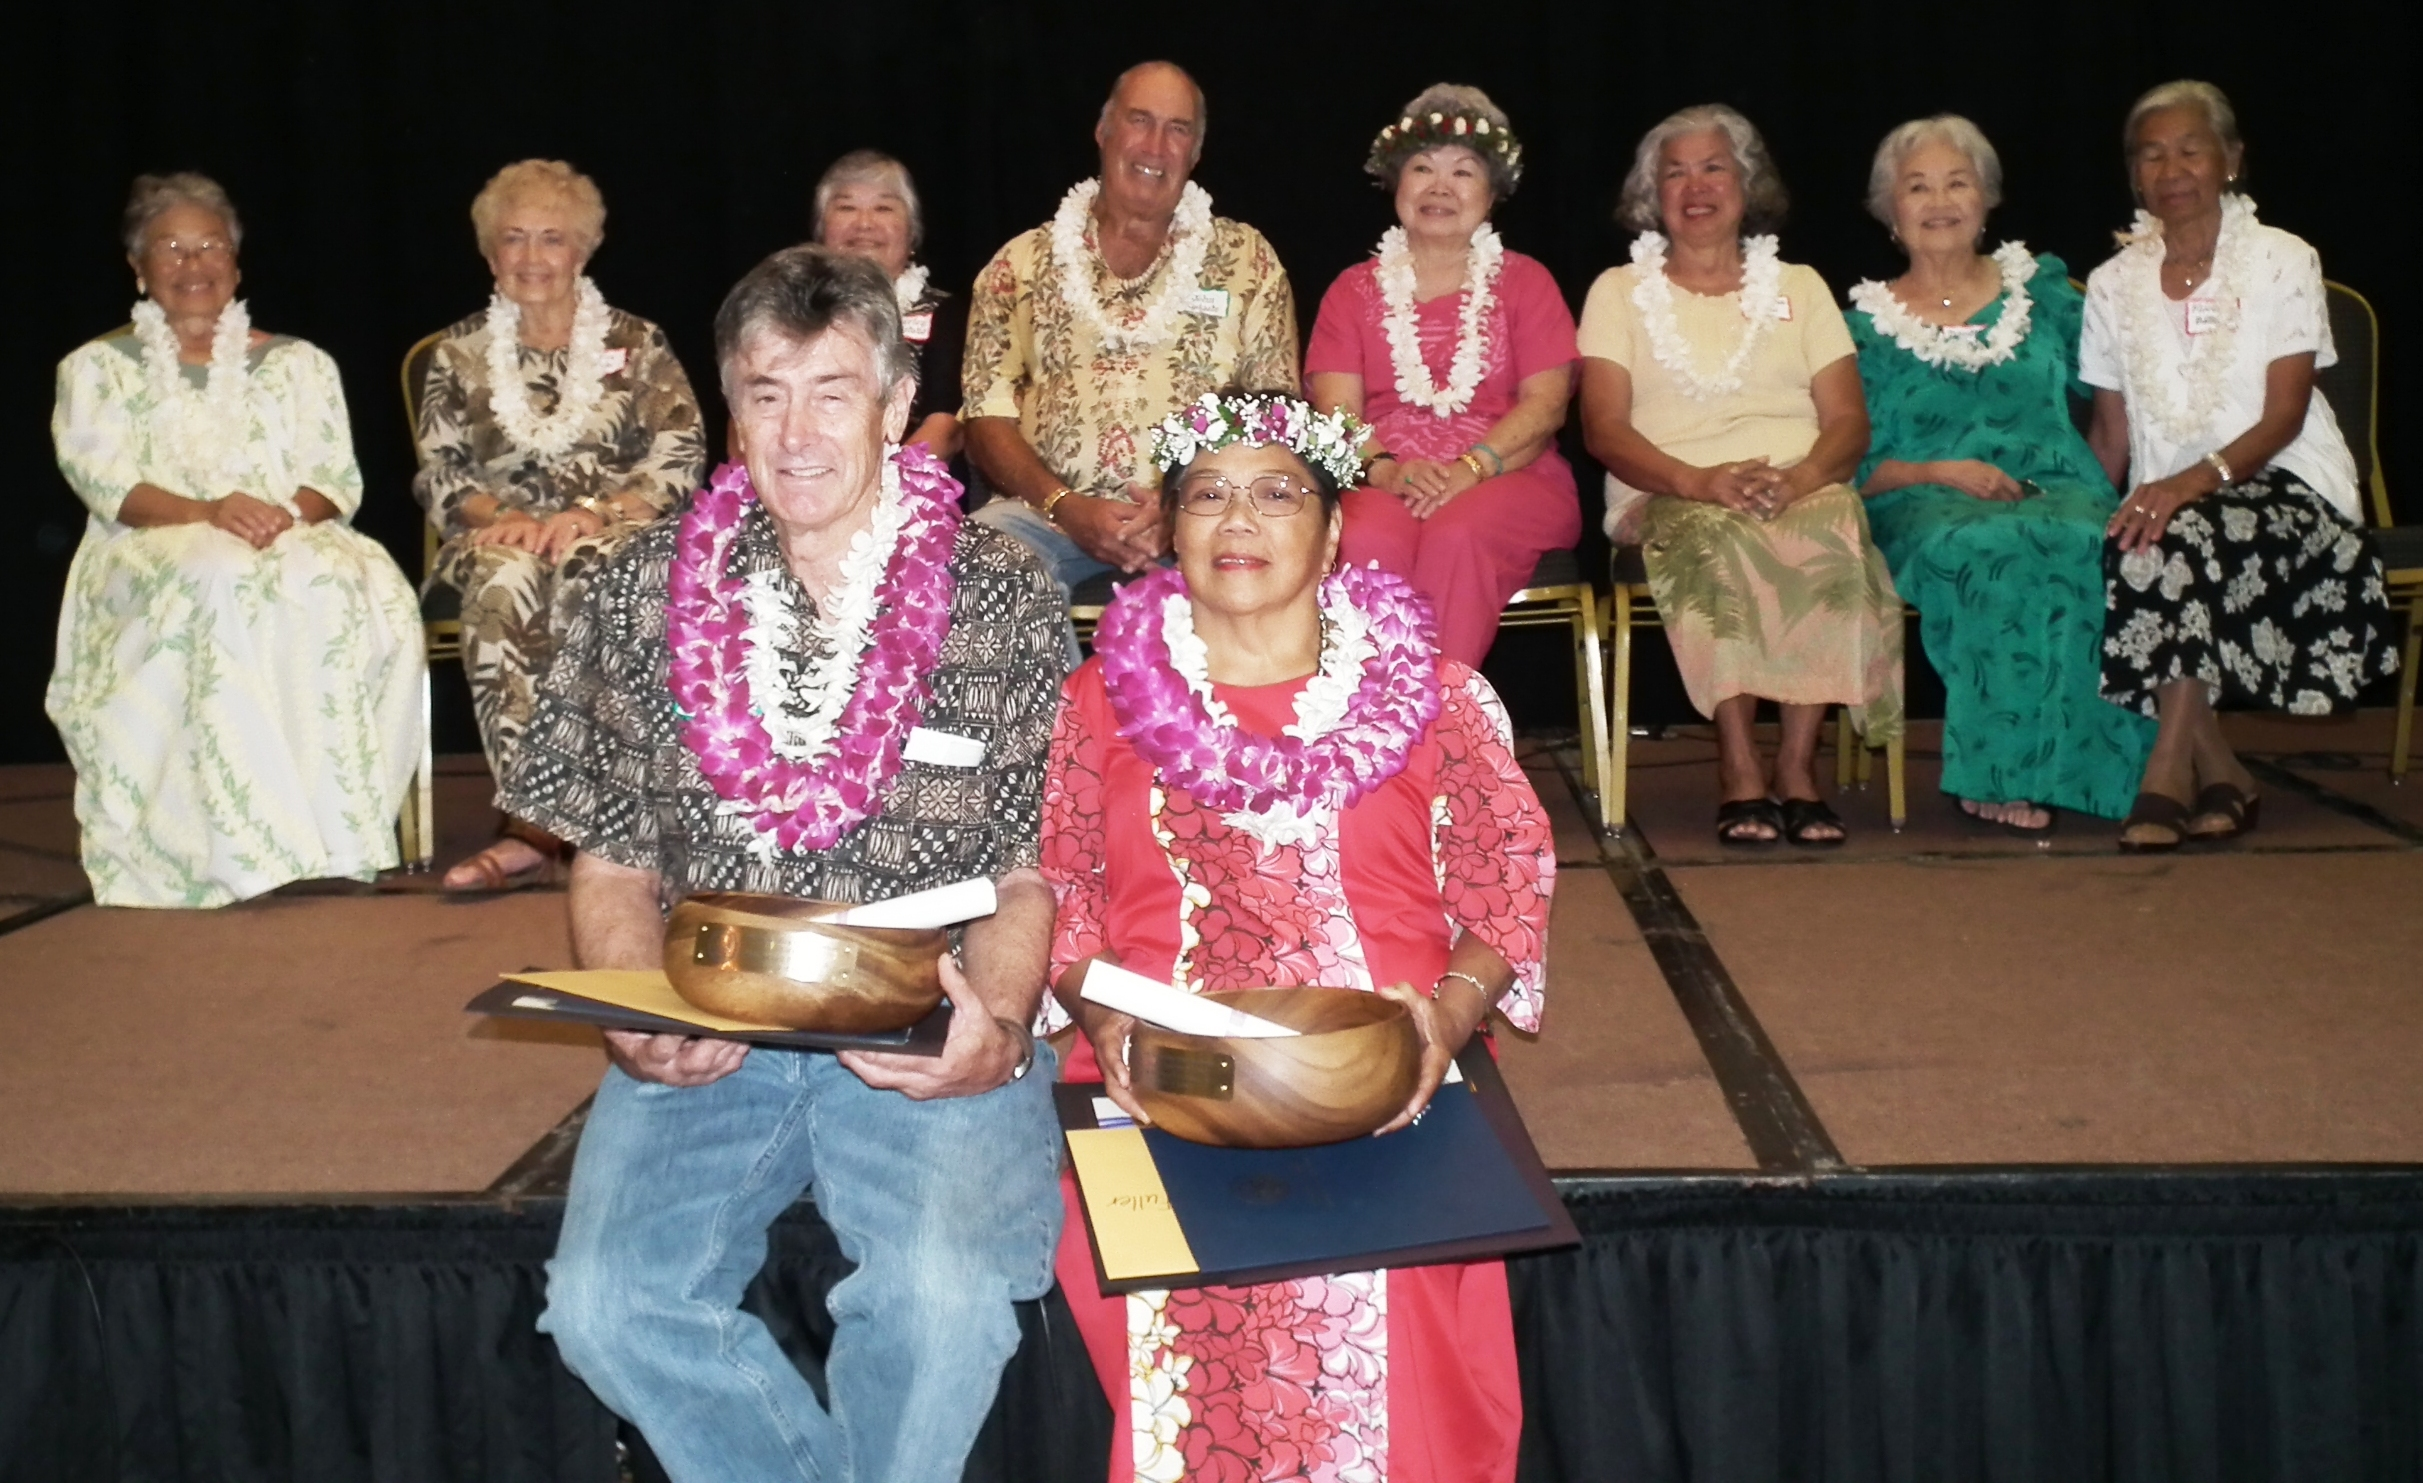 David Walker and Nancy Fuertes Fuller (front row) were named Kaua'i's 2012 Outstanding Older Americans. The other nominees shown in the back row (L to R) are: Joanne Watanabe; Lorin Wade; Shirley Matsuo; John Lydgate; Kay Hill; Martina Brun; Dorothy Brierley; and Florencia Balualua.